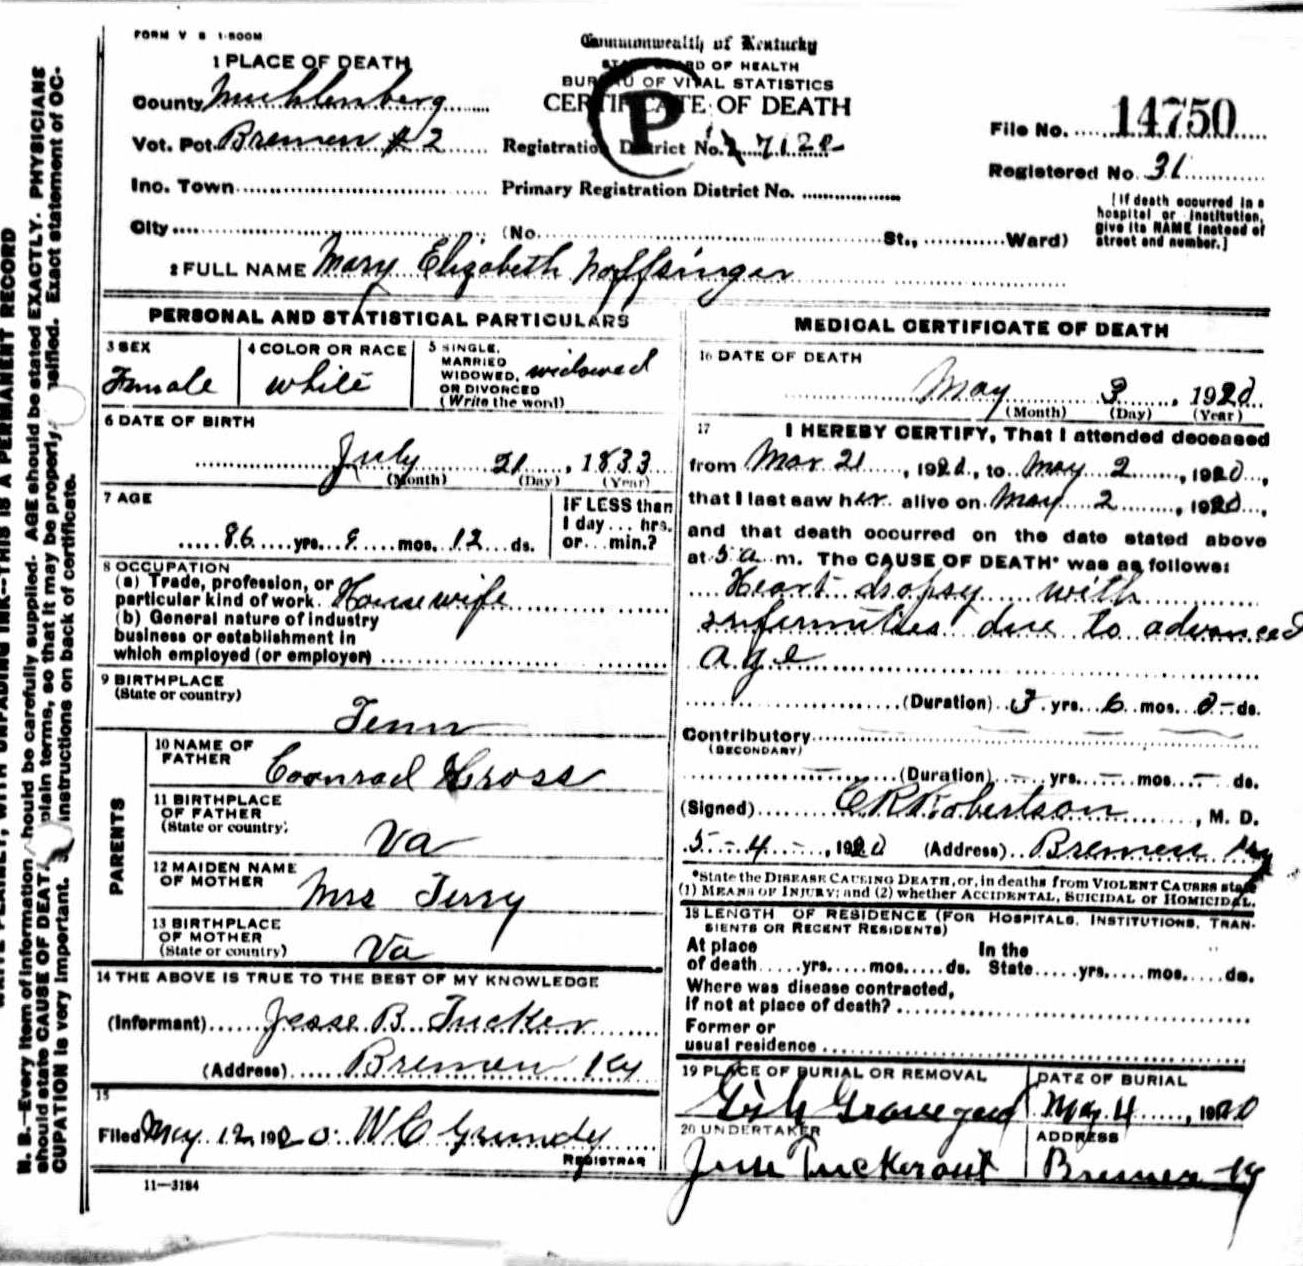 death certificates n mary elizabeth noffsinger 1833 1920 conrad gross mrs terry jesse b tucker bremen muhlenberg kentucky tennessee virginia gish